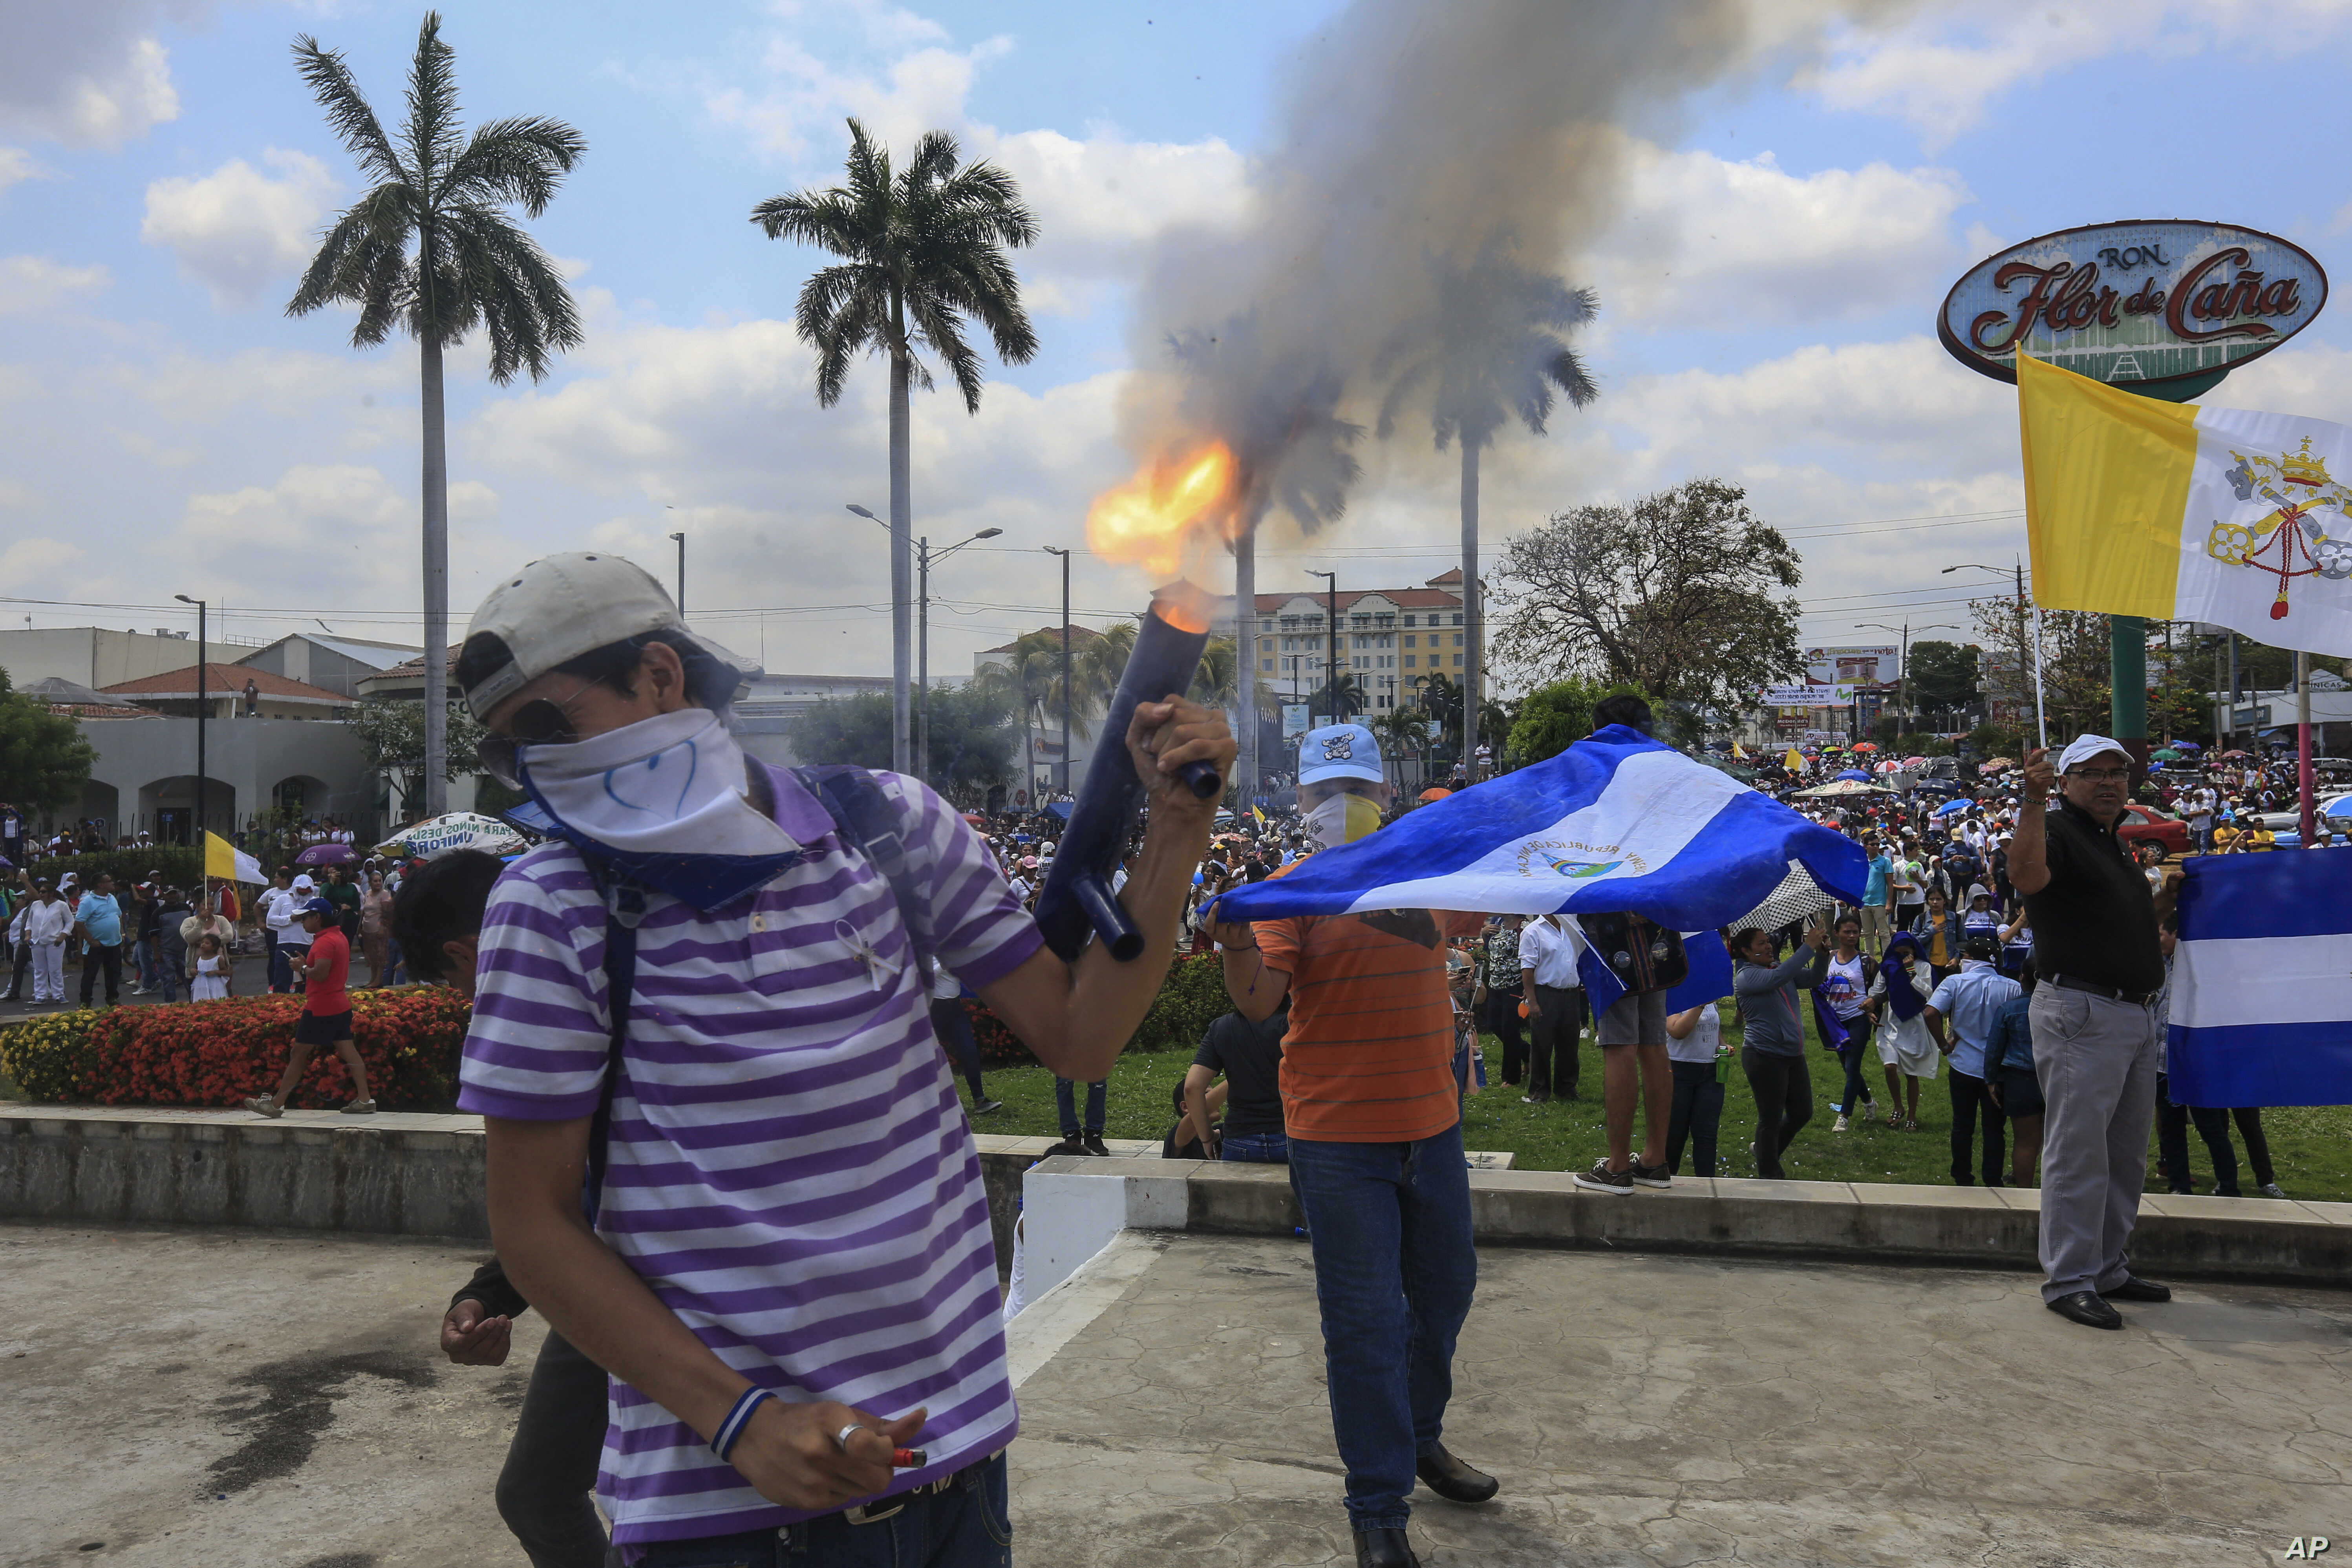 An anti-government protester fires a homemade mortar on the sidelines of a Stations of the Cross procession on Good Friday in Managua, Nicaragua, April 19, 2019.